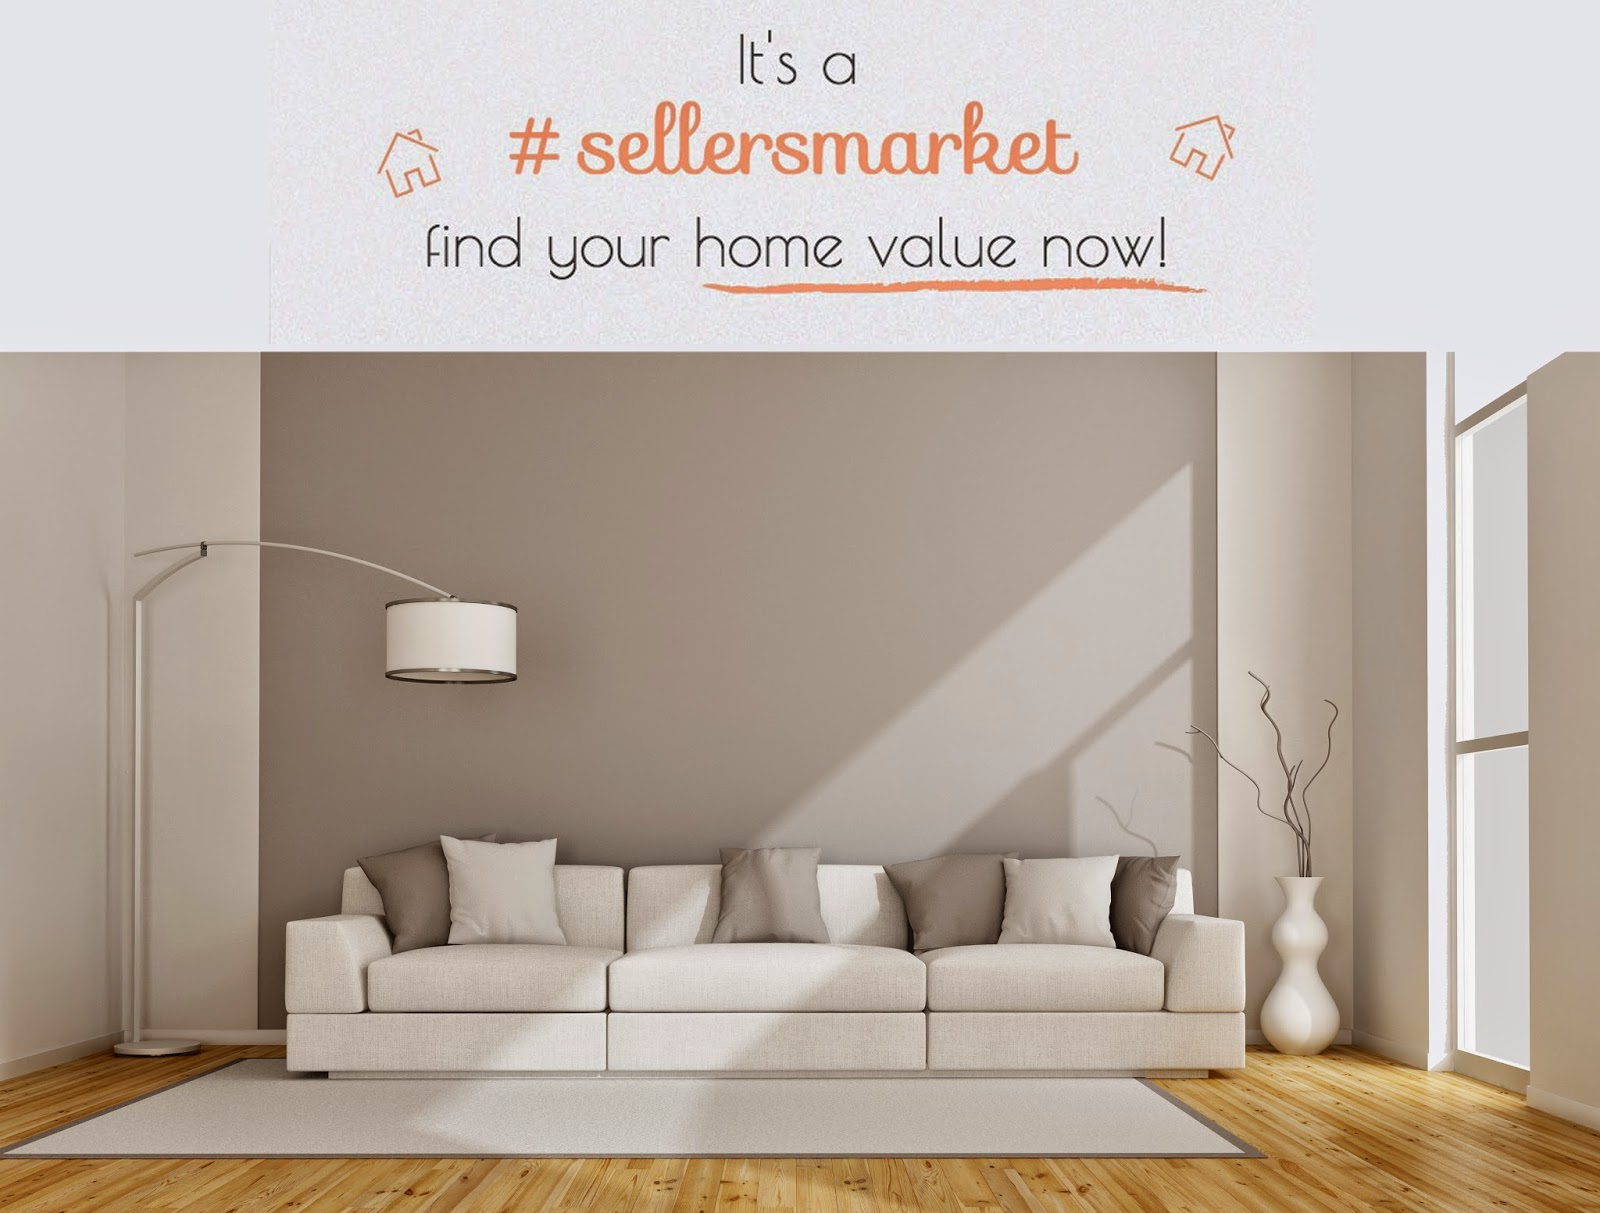 Find out your home value now!